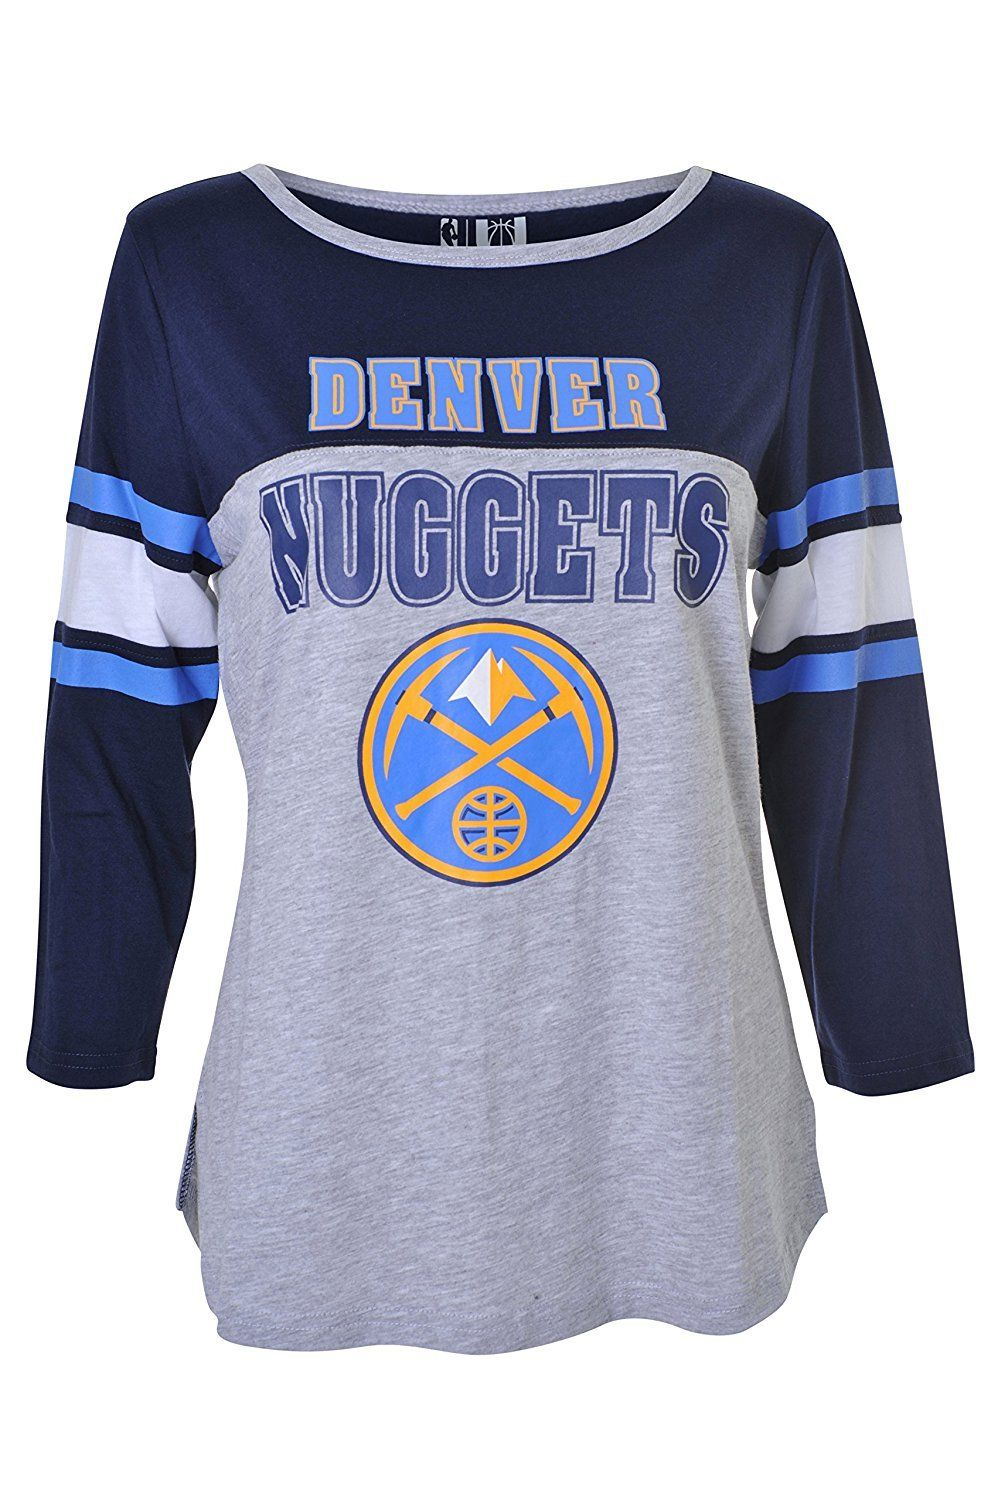 eeac66738 T Shirt · High quality screen print graphics of your favorite NBA team in  official team colors. Perfect